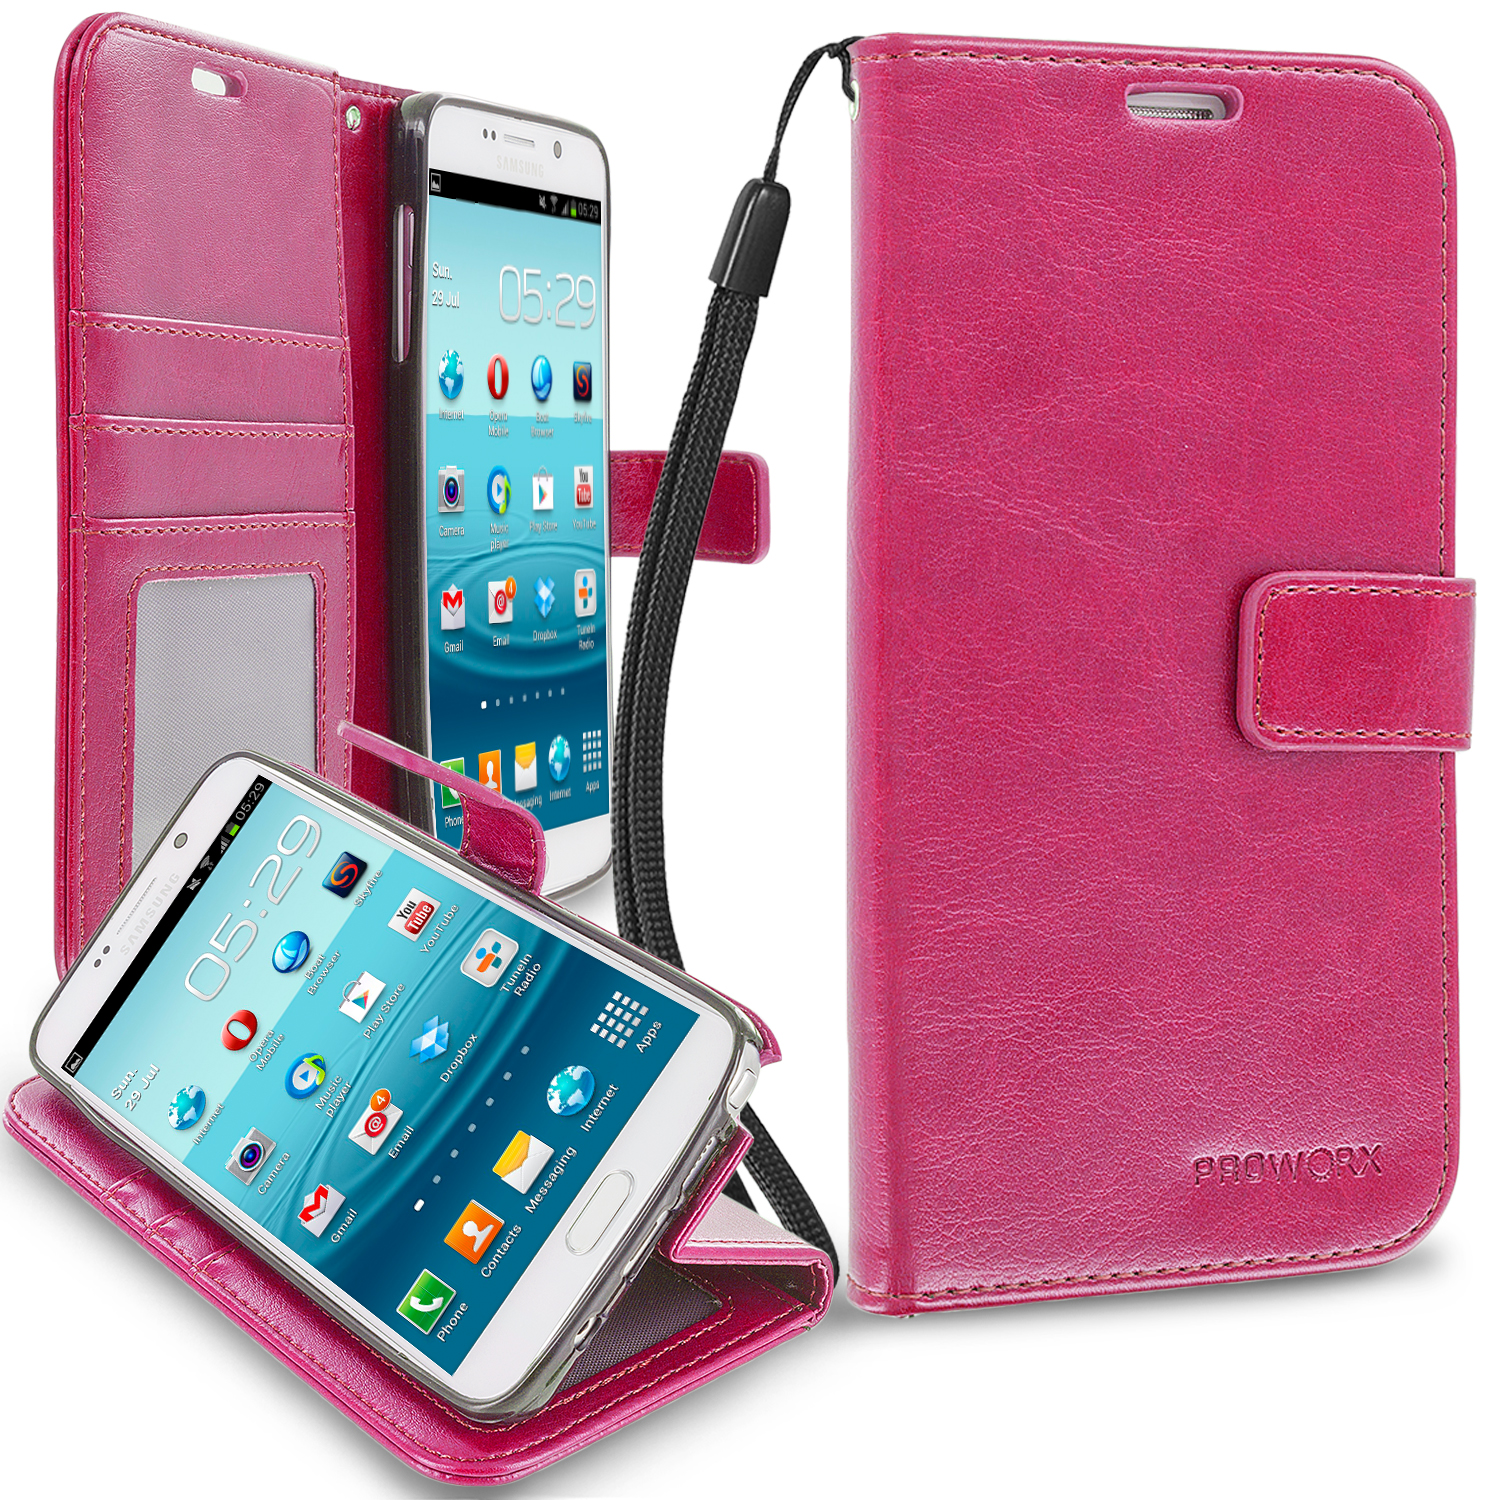 Samsung Galaxy Note 5 Hot Pink ProWorx Wallet Case Luxury PU Leather Case Cover With Card Slots & Stand